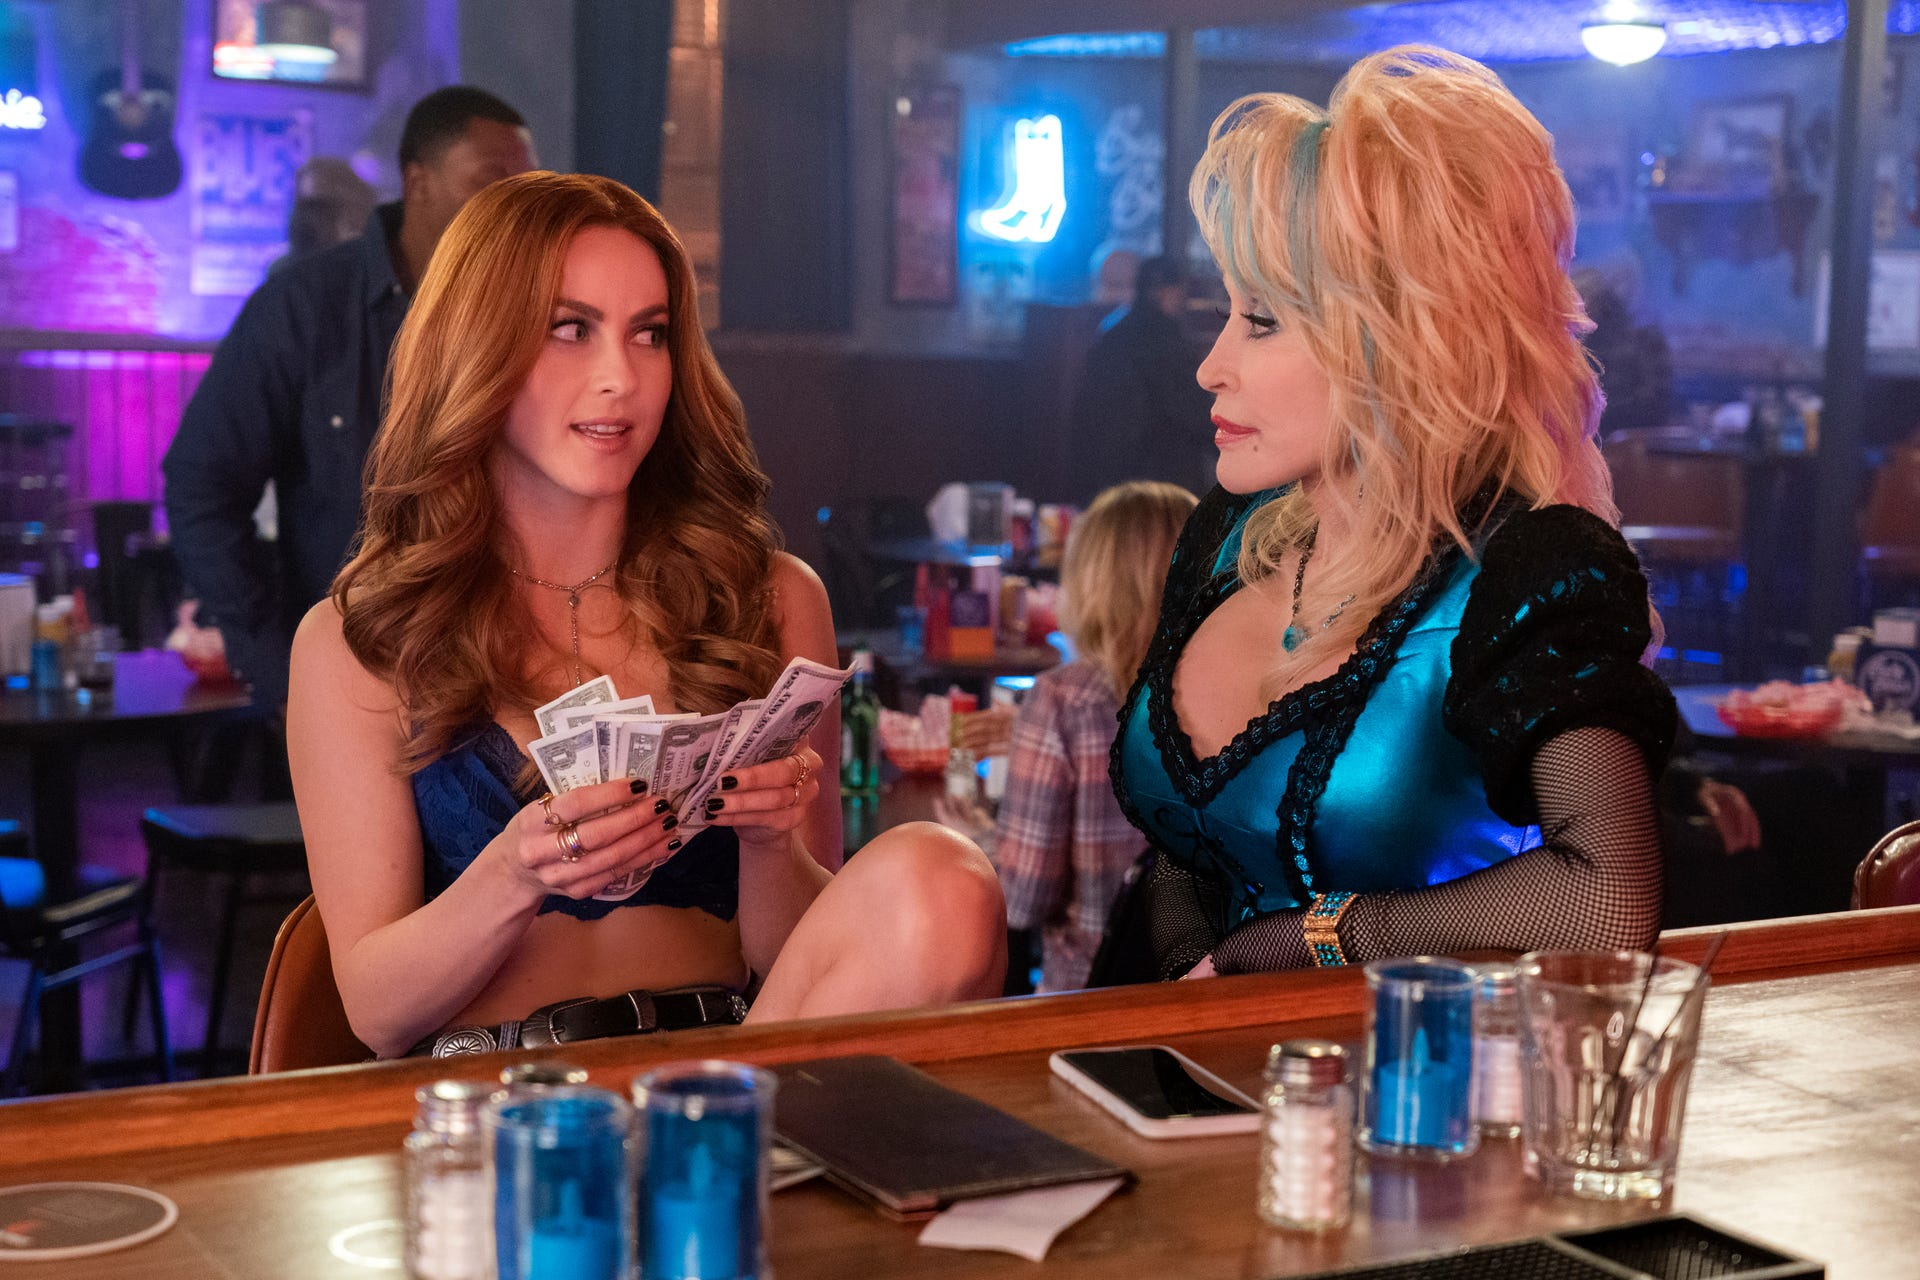 ulianne Hough and Dolly Parton in Dolly Parton's Heartstrings. (Tina Rowden/Netflix)